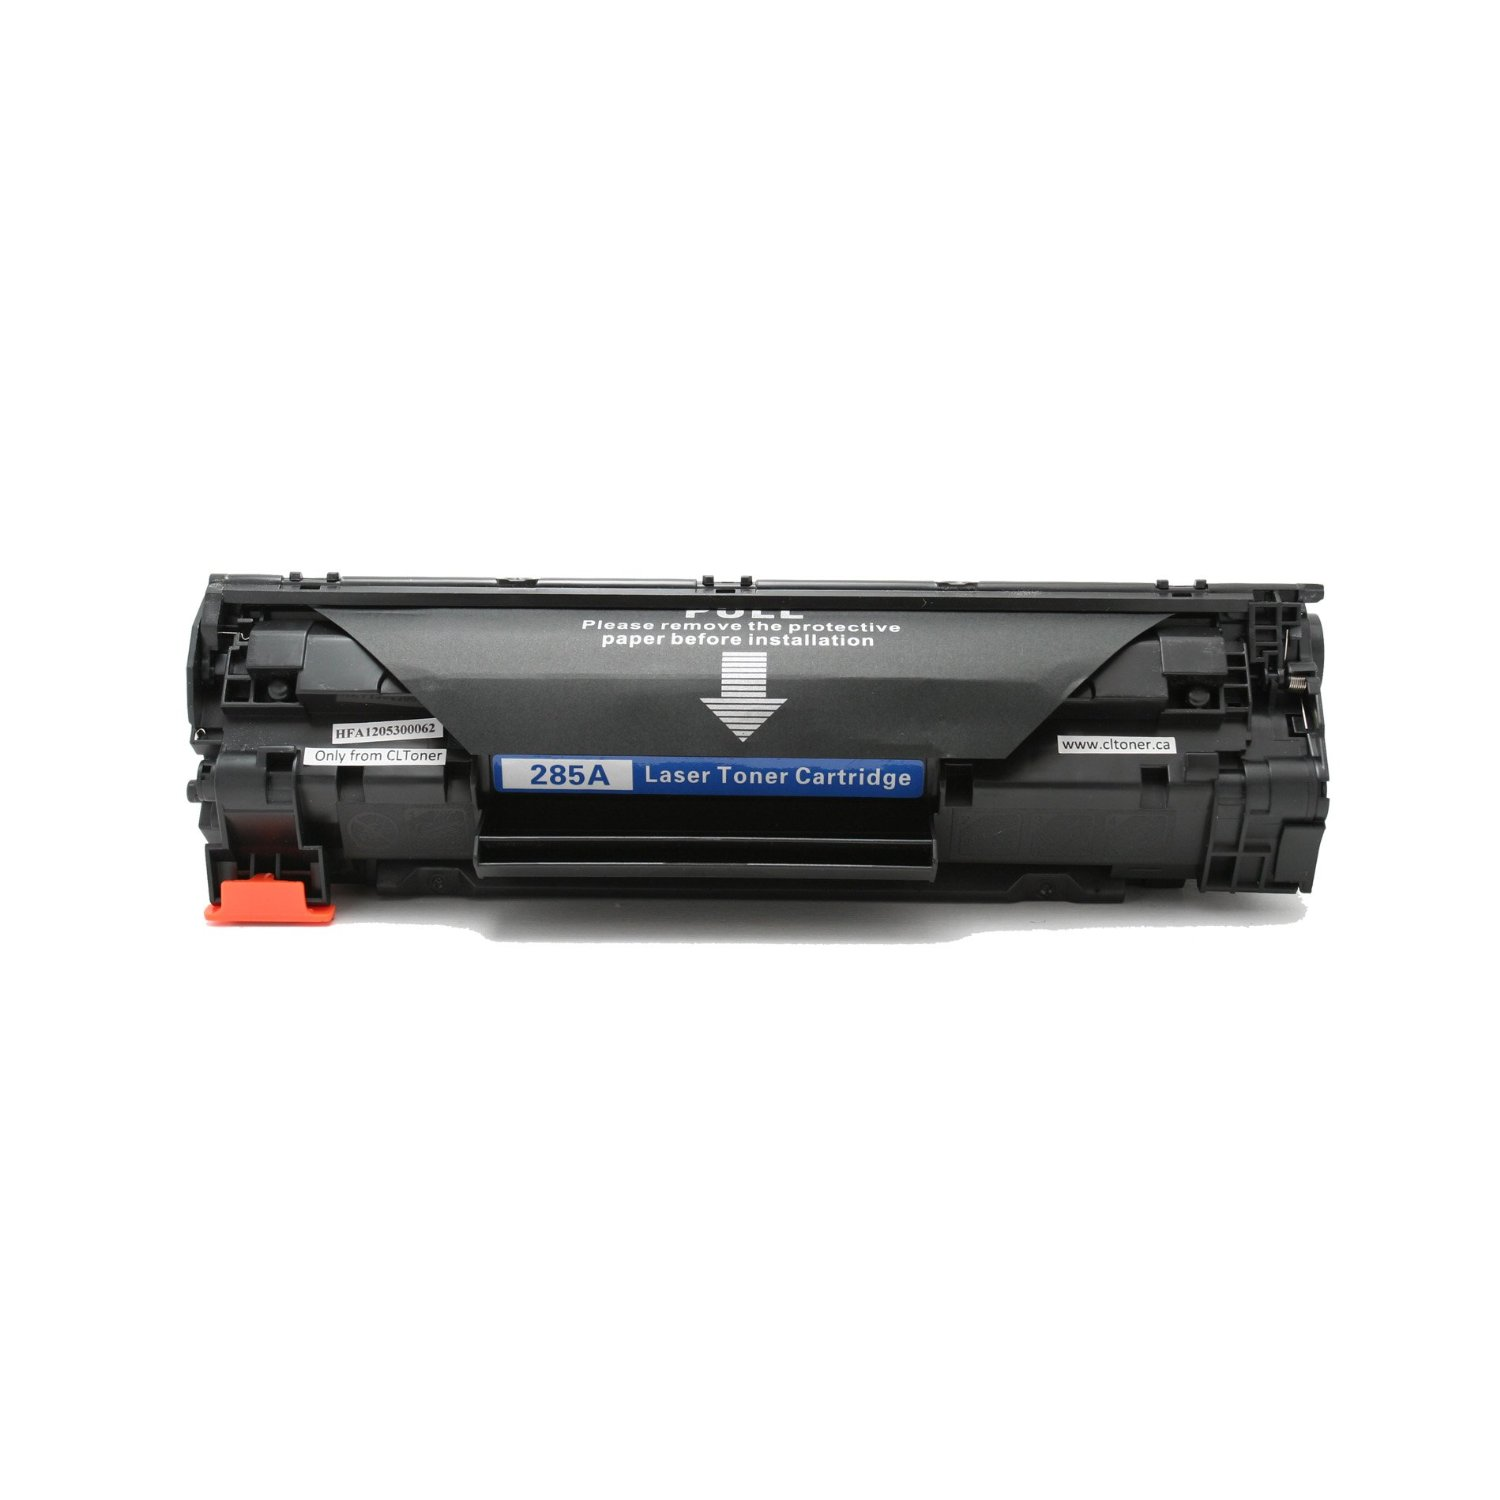 HP CE285A: Toner Cartridge CE285A (85A) Compatible Toner Cartridge